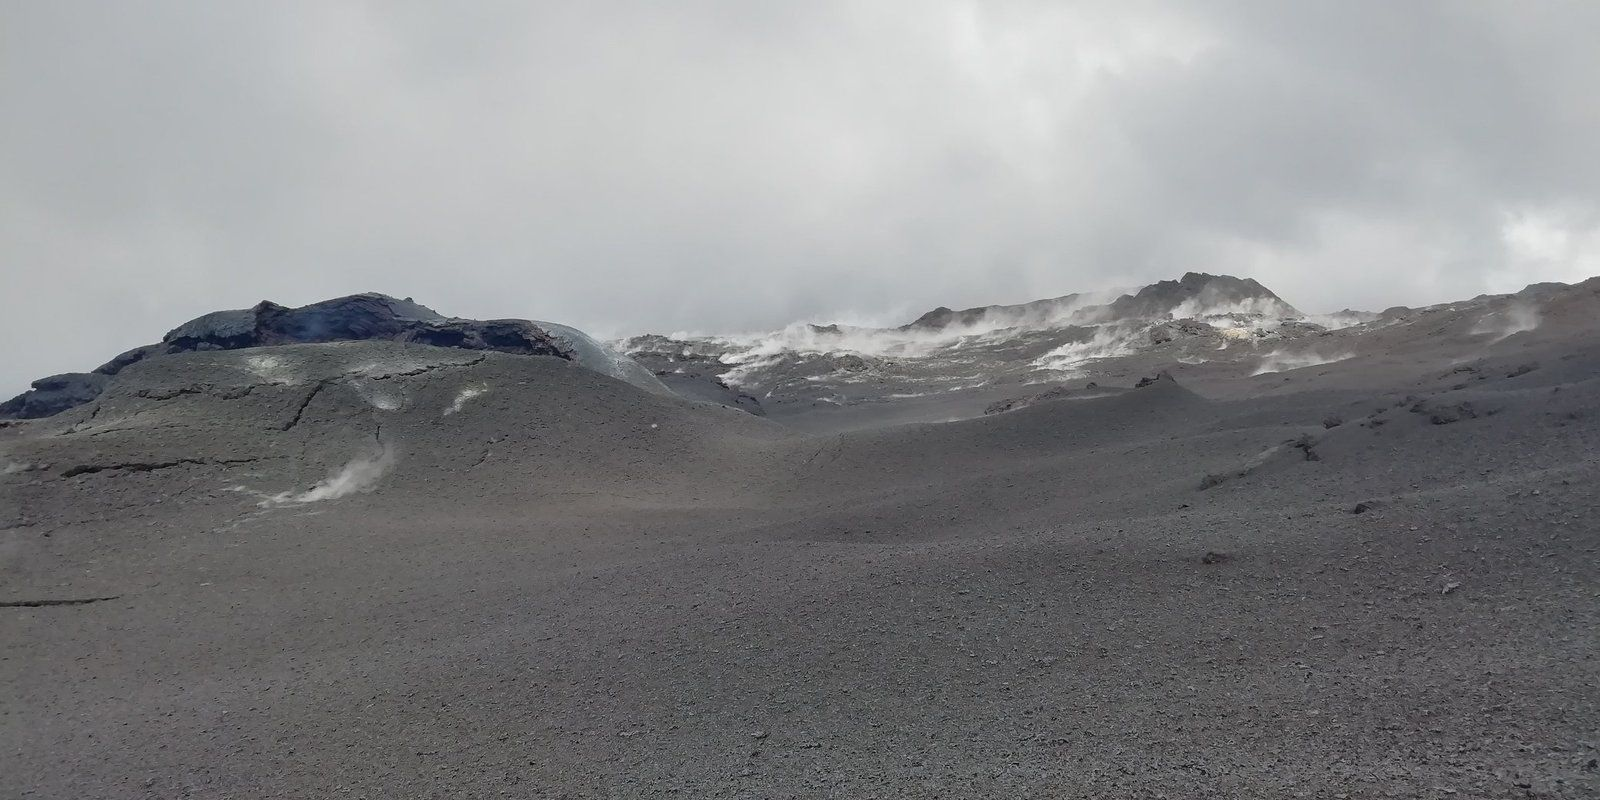 Piton de La Fournaise - 09.04.2020 - Mission 2 OVPF reconnaissance of the site of the eruption of 2-6 April and fault diagnosis on one of our stations. - Photo OVPF / Facebook - one click to enlarge